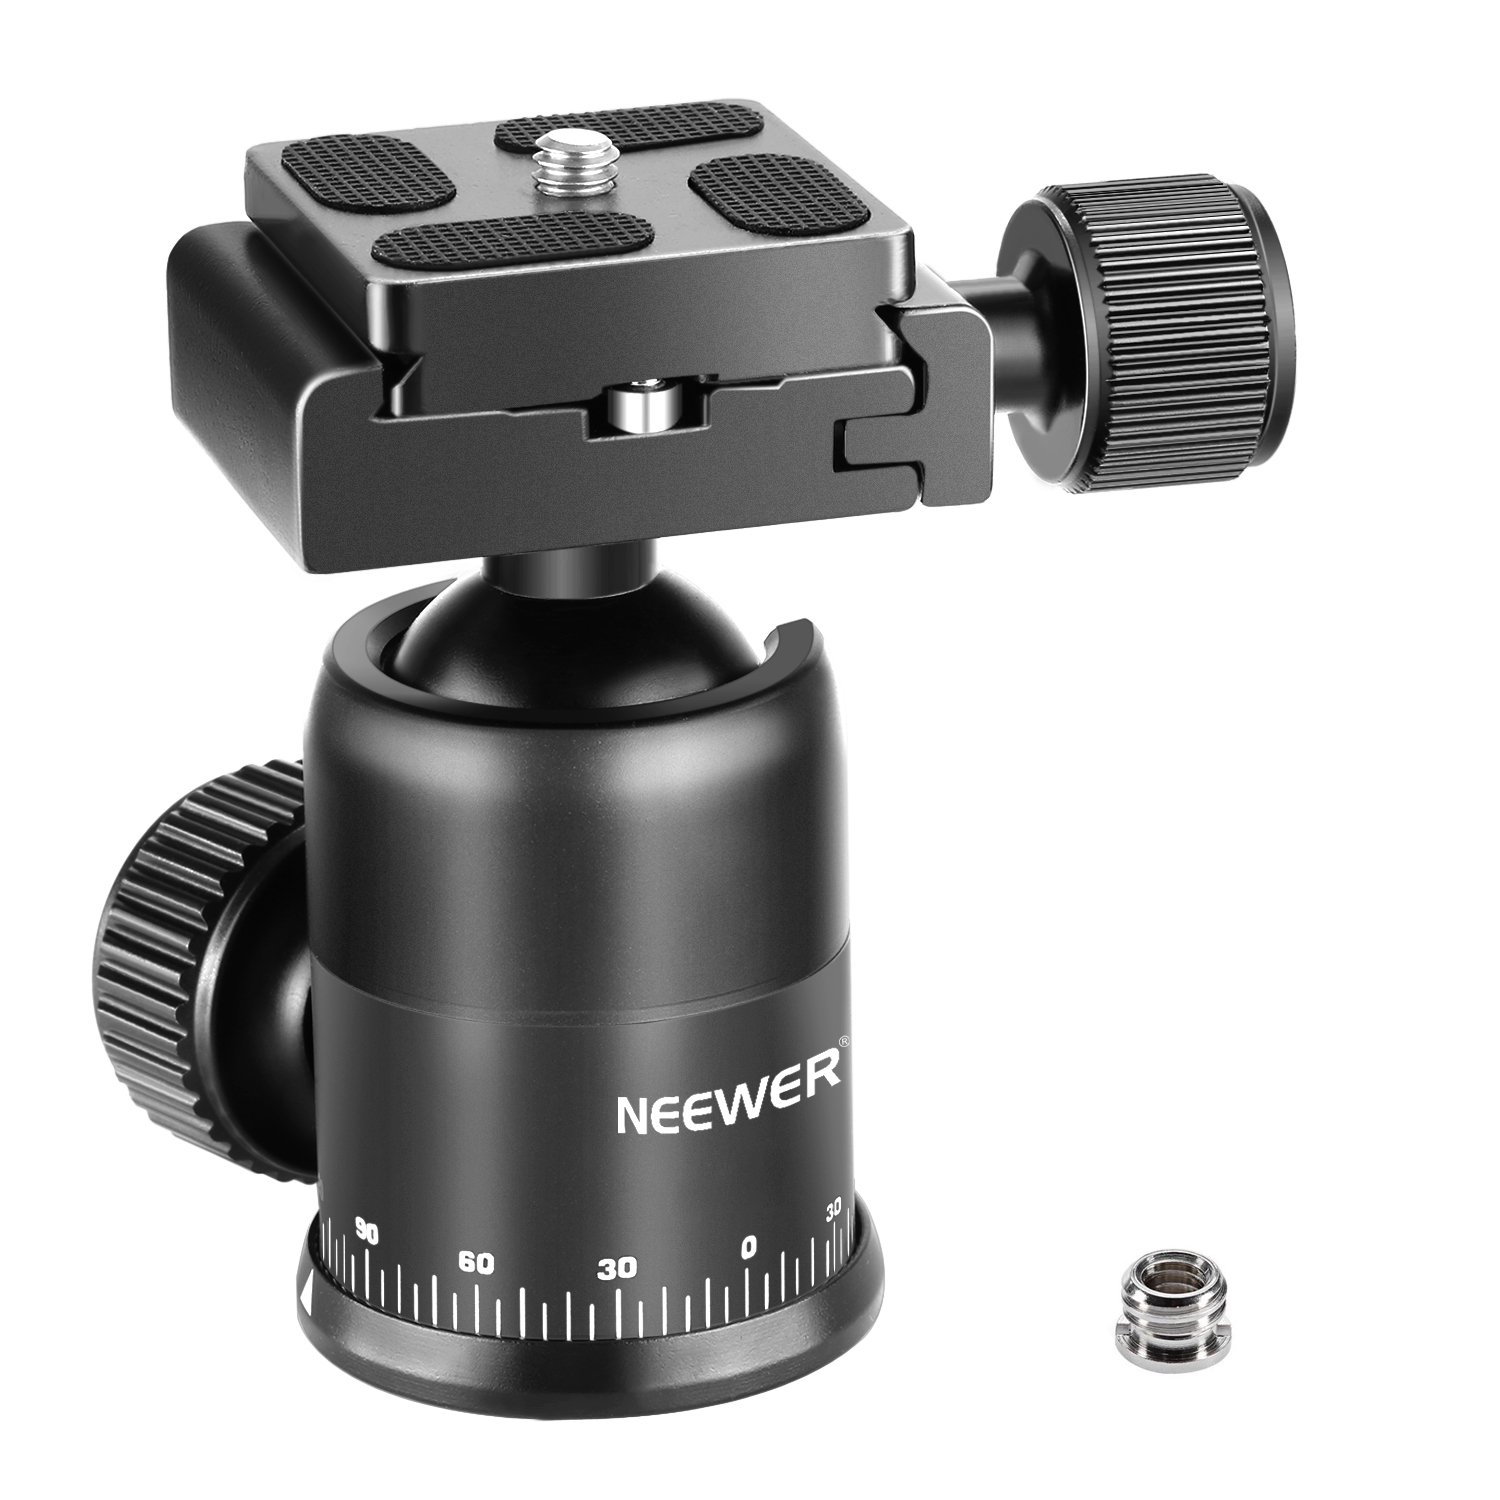 Neewer Camera Tripod Ball Head 360 Degree Rotating Panoramic with 1/4 inch Quick Shoe Plate, Bubble Level for DSLR Camera Camcorder Tripod Monopod, Slider up to 11 pounds/5 kilograms (Aluminum Alloy) 10090777